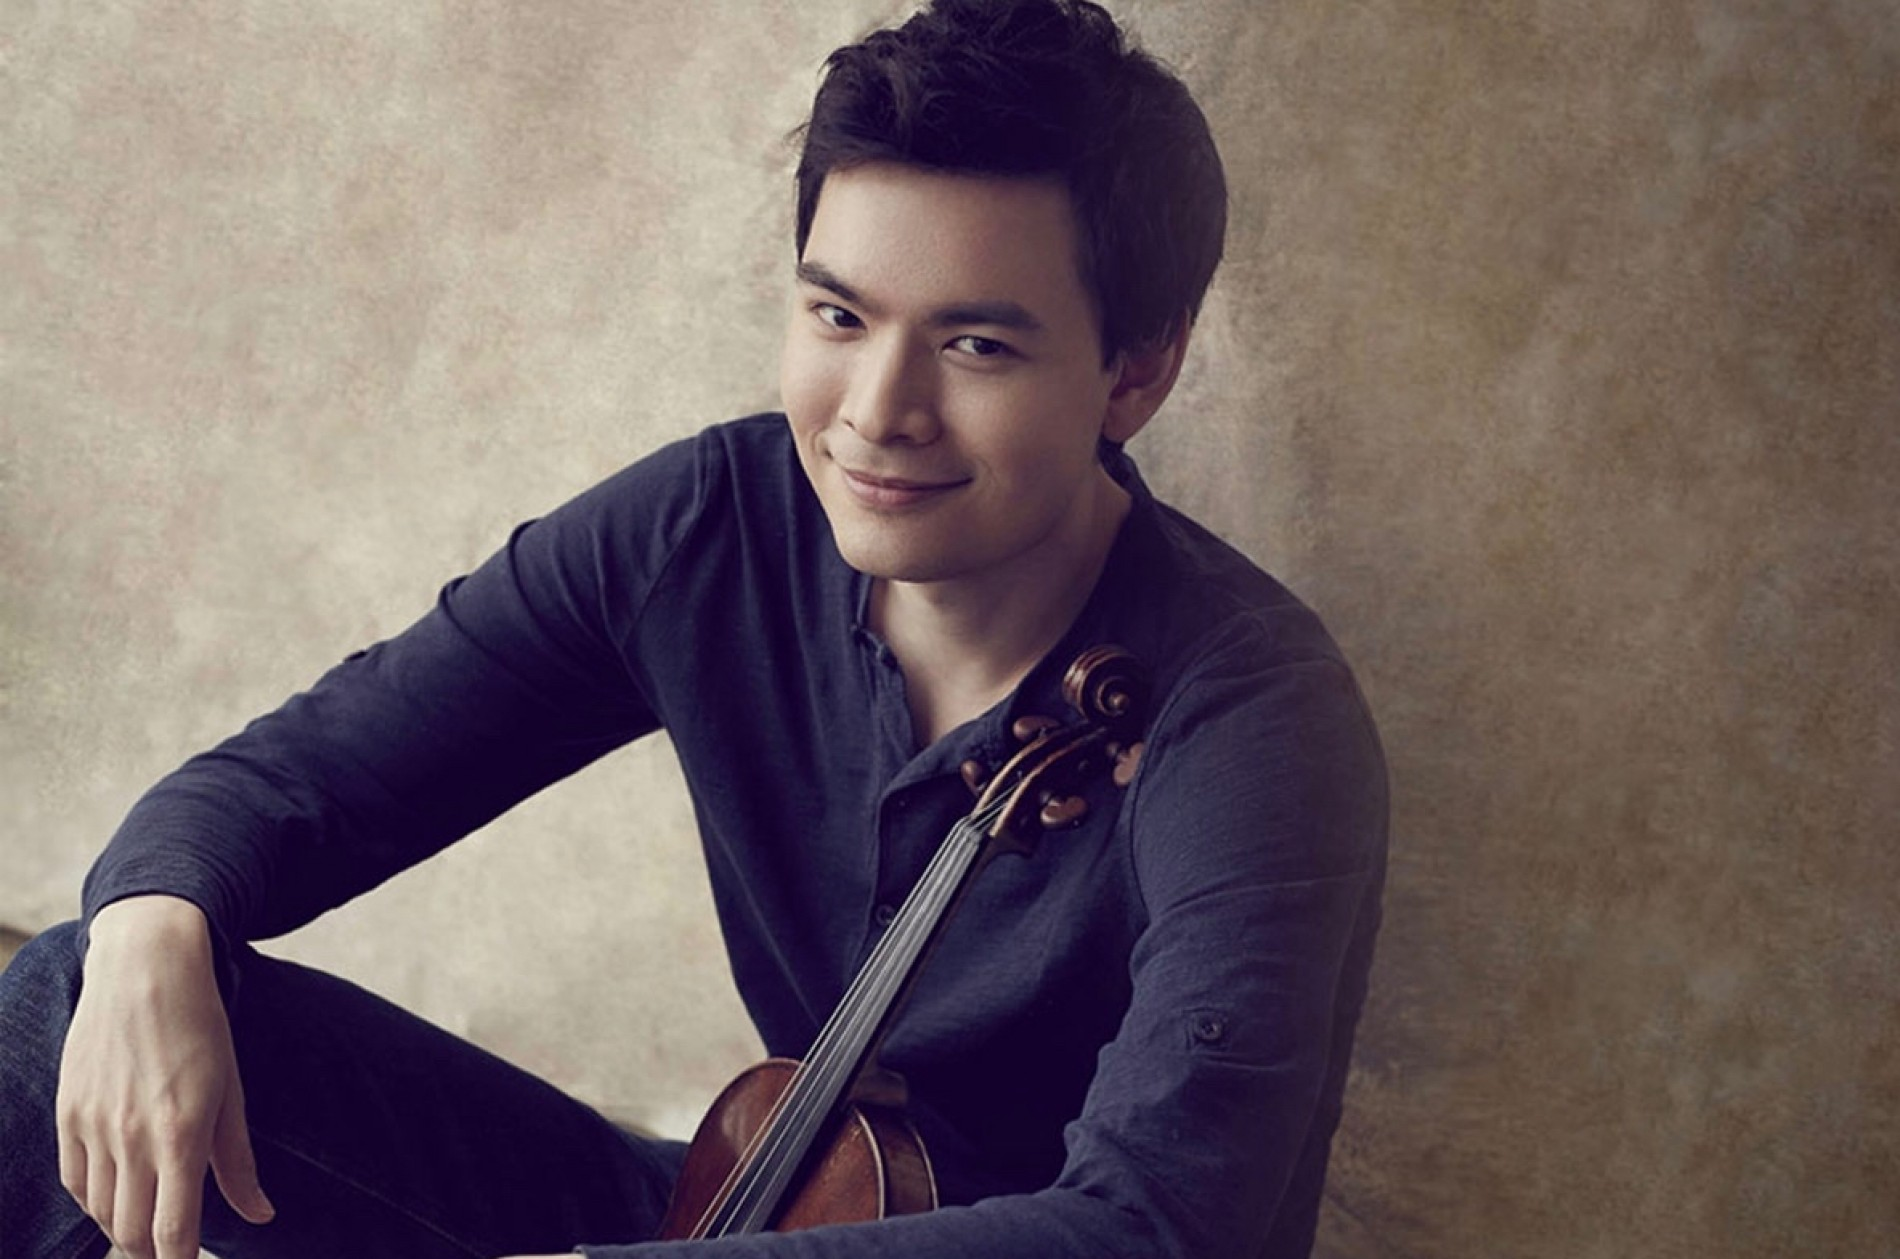 Violinist Stefan Jackiw sitting against wall with violin